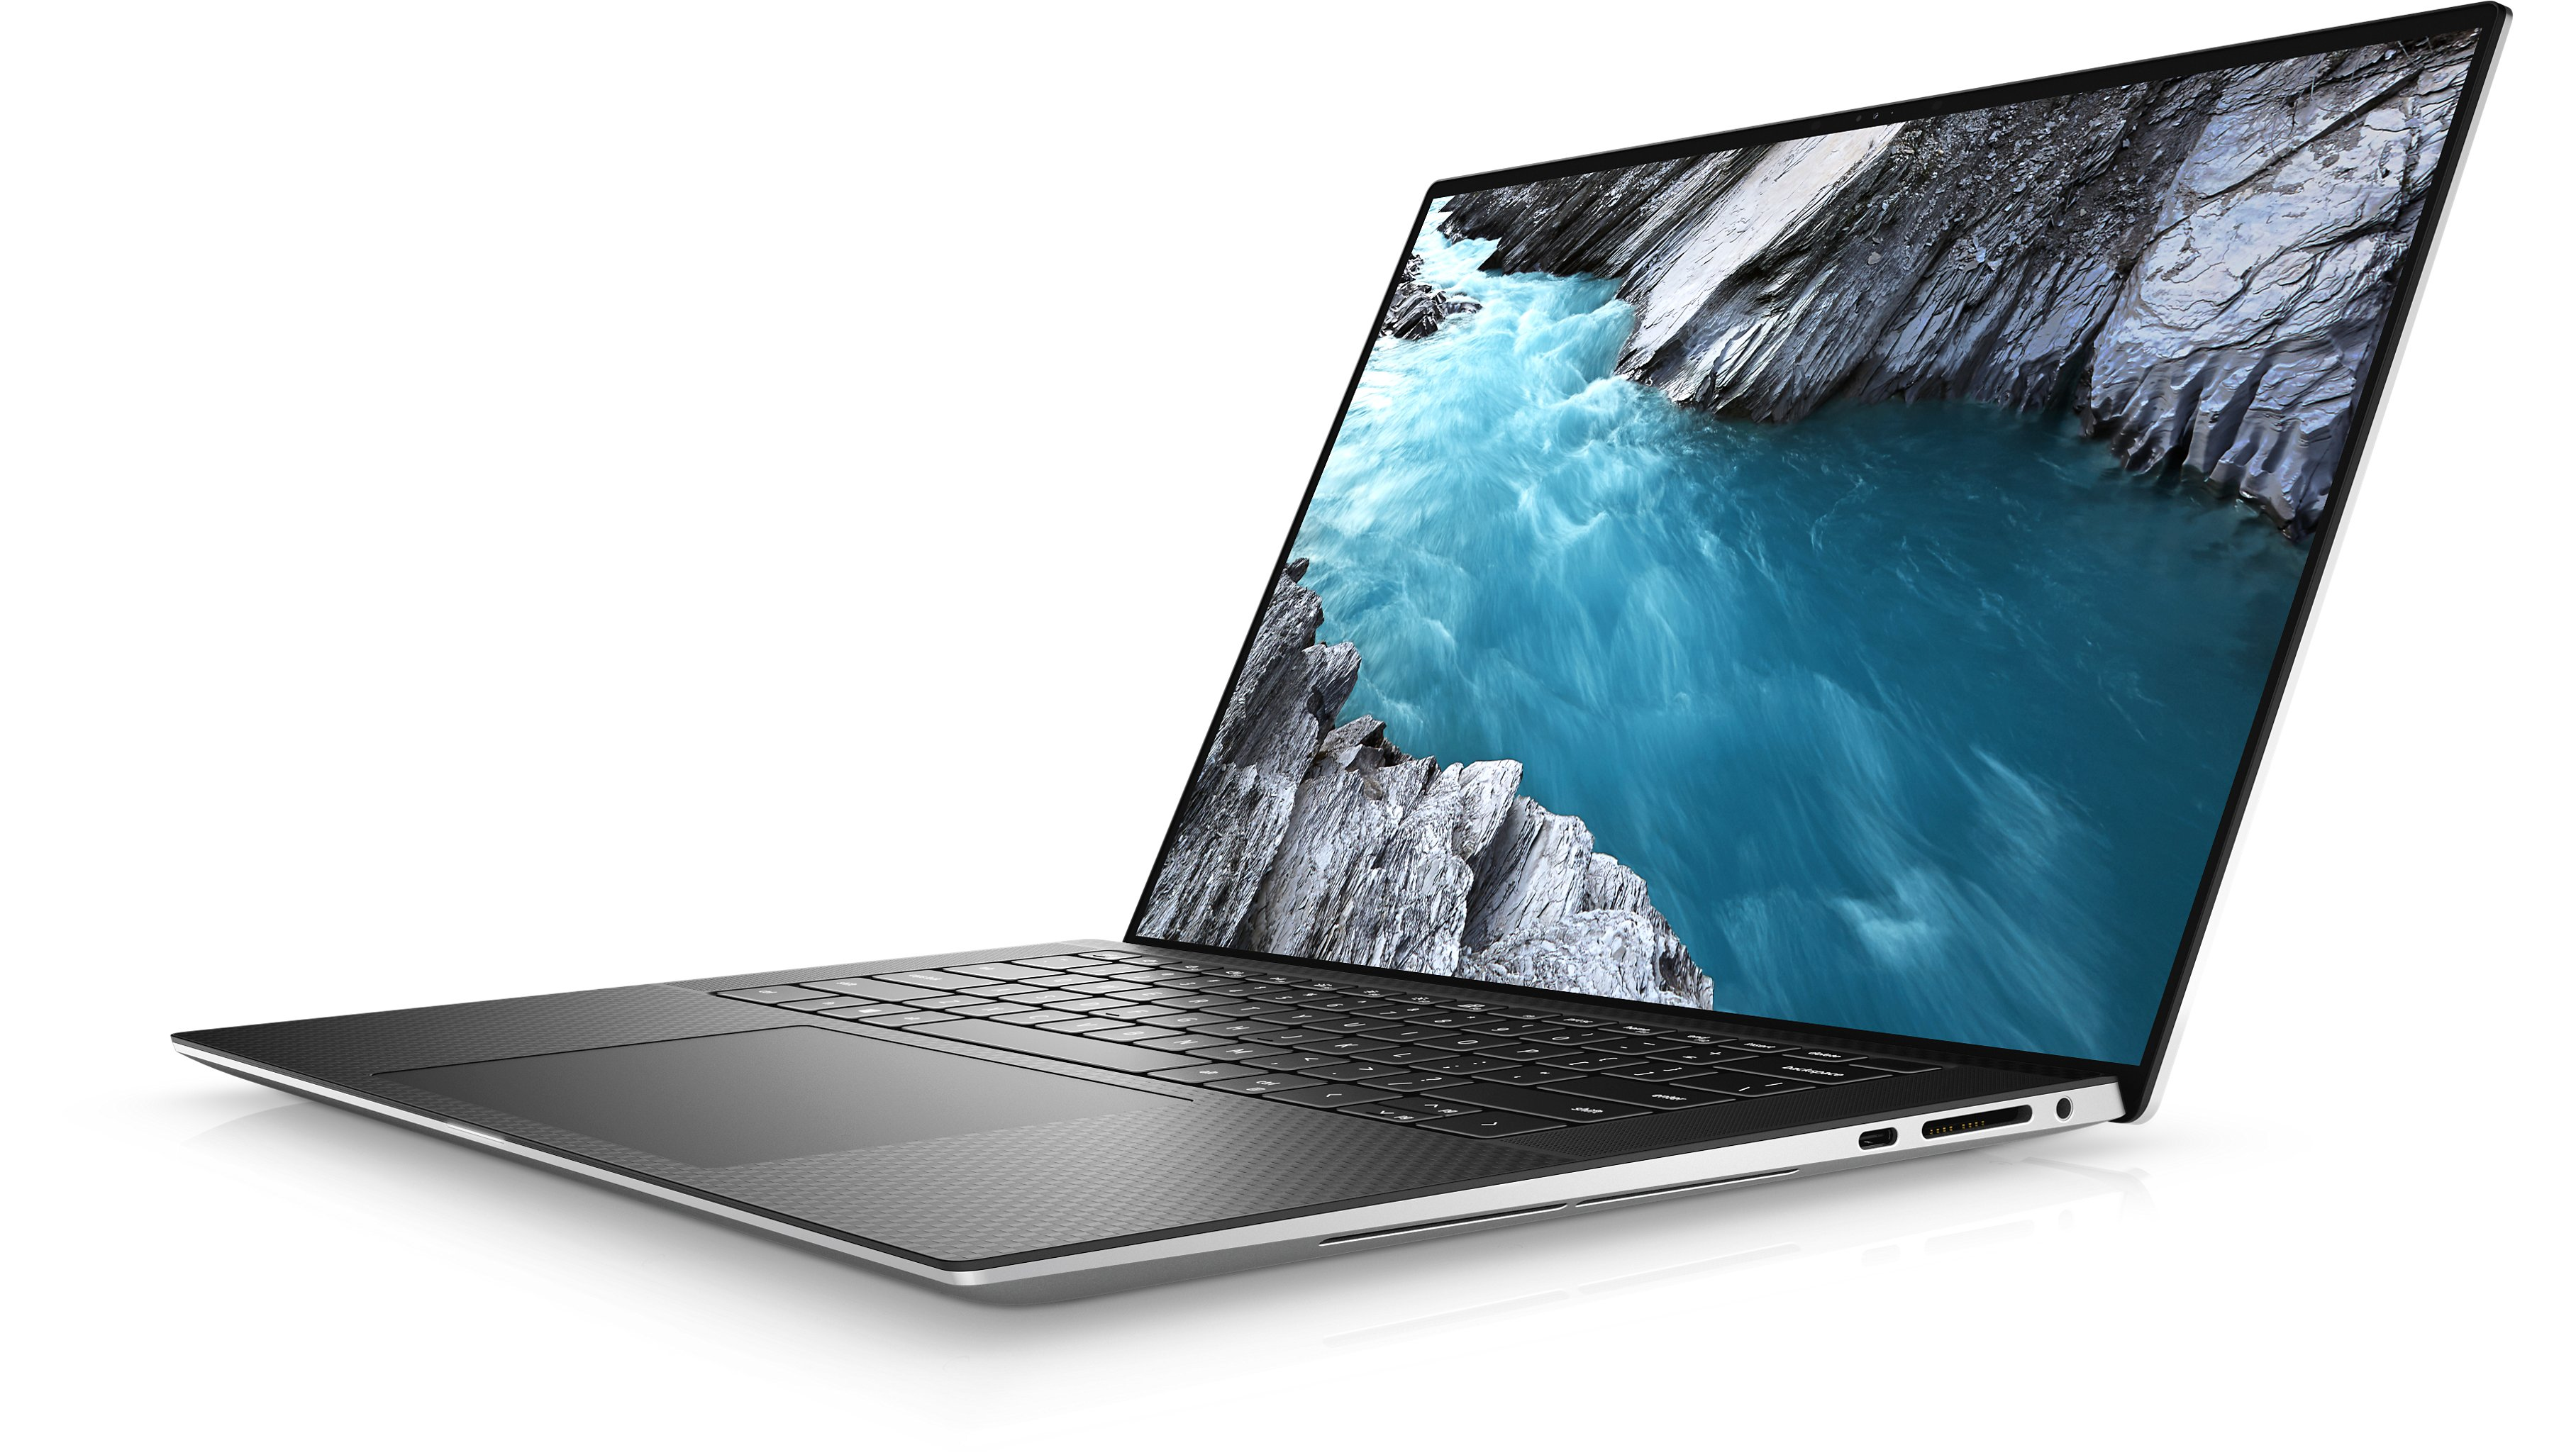 Best Laptop For Photography